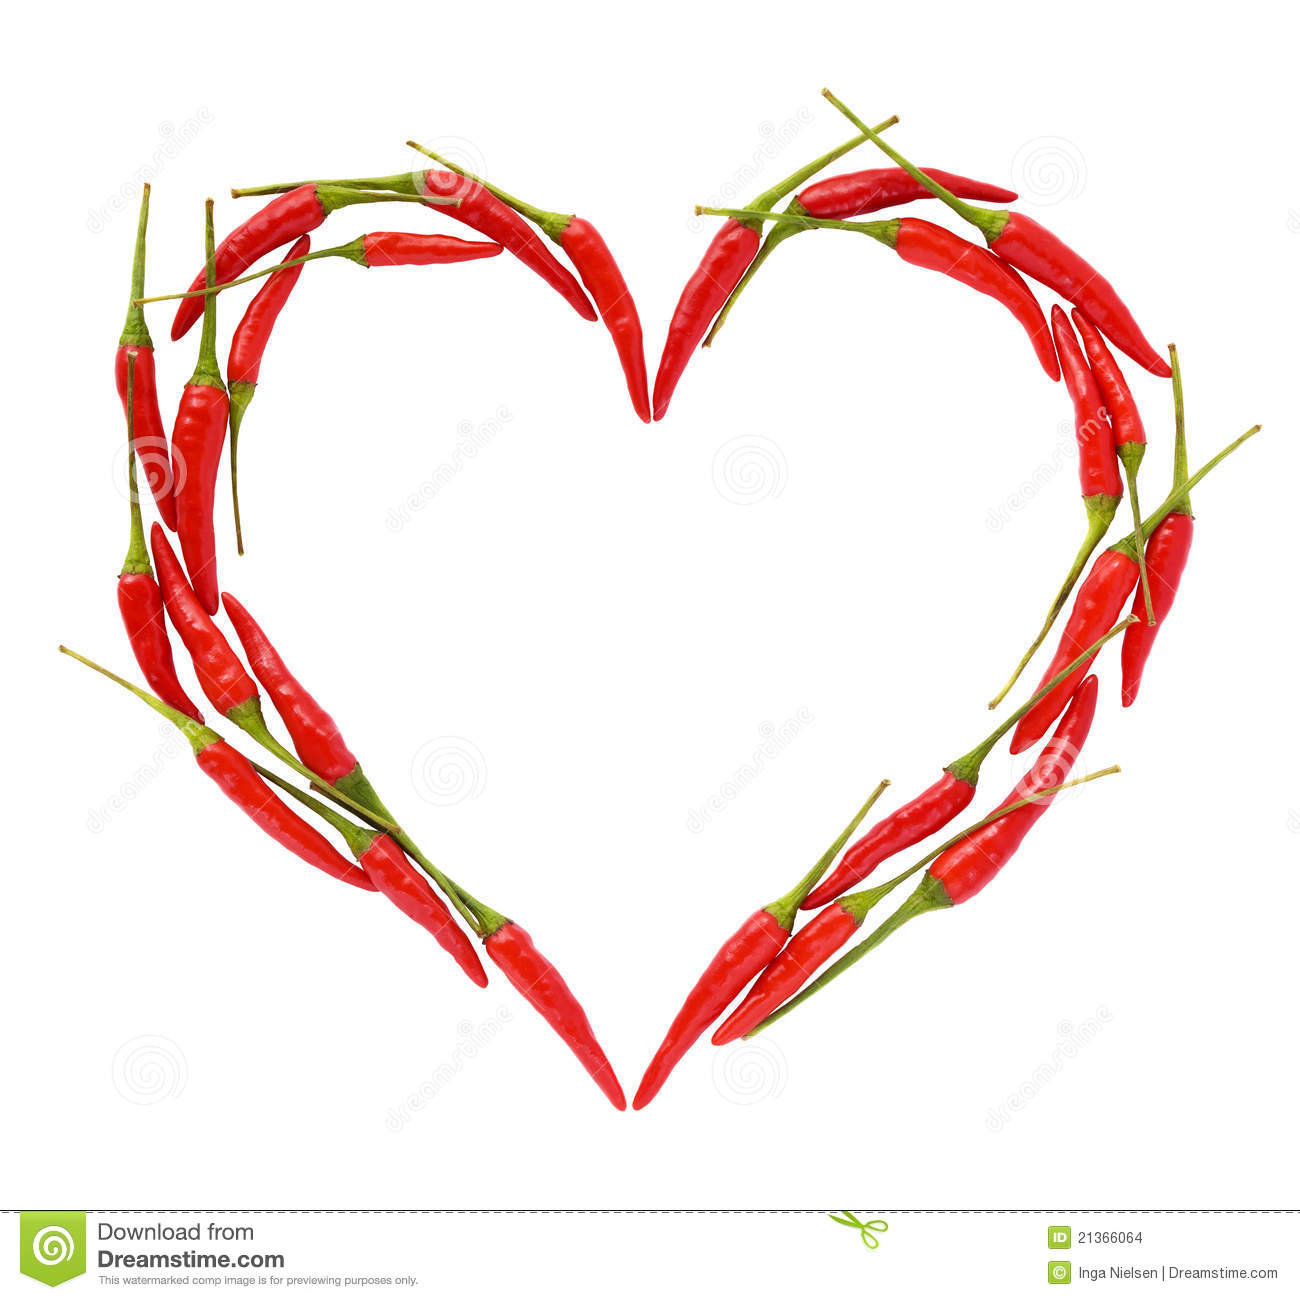 chili peppers heart stock photo image of pepper nobody 21366064